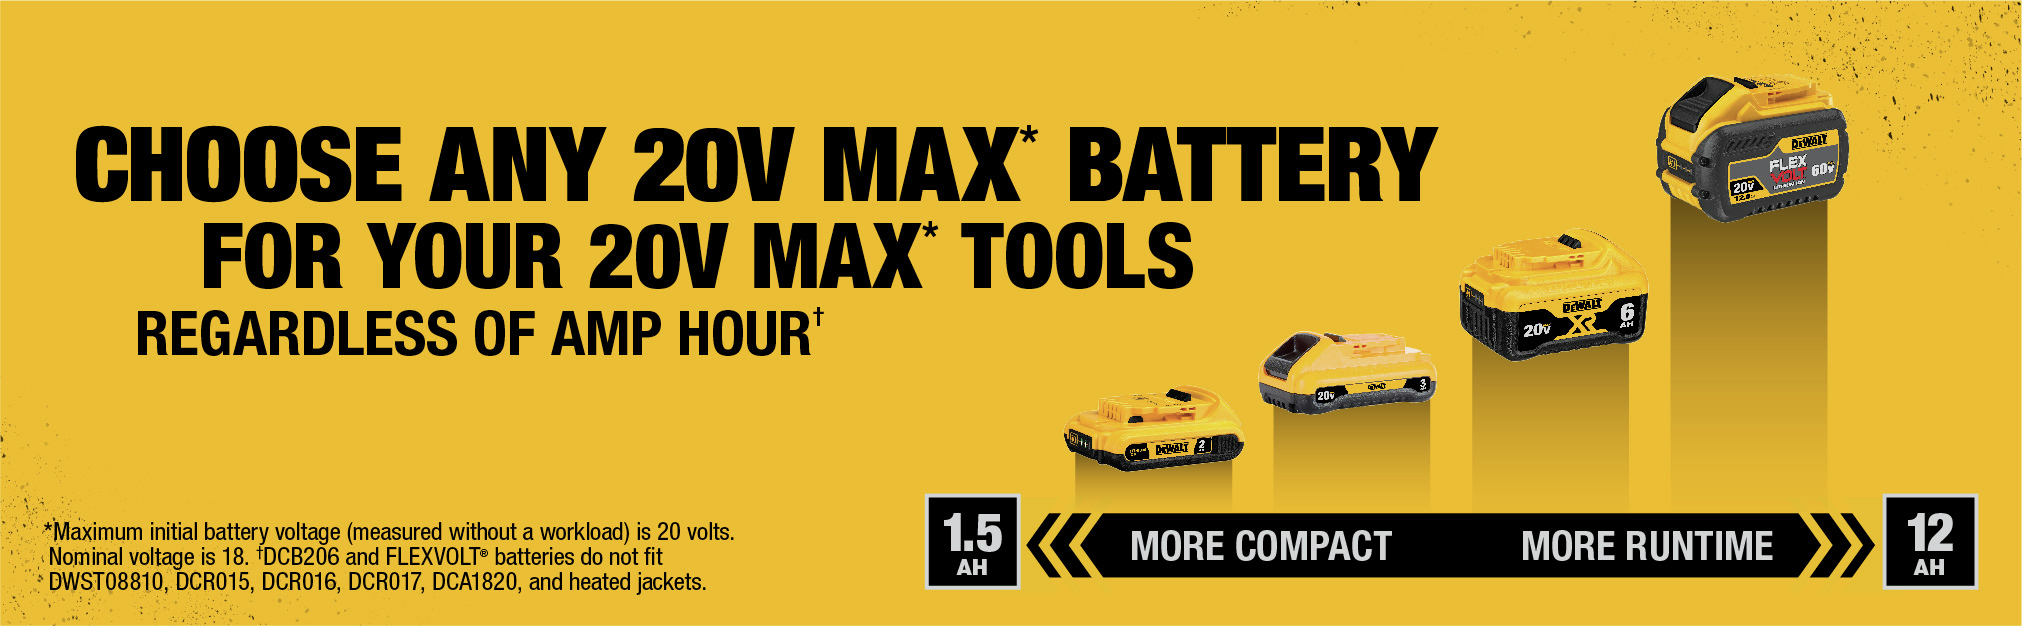 Choose Any 20V MAX Battery for your 20V MAX Tools